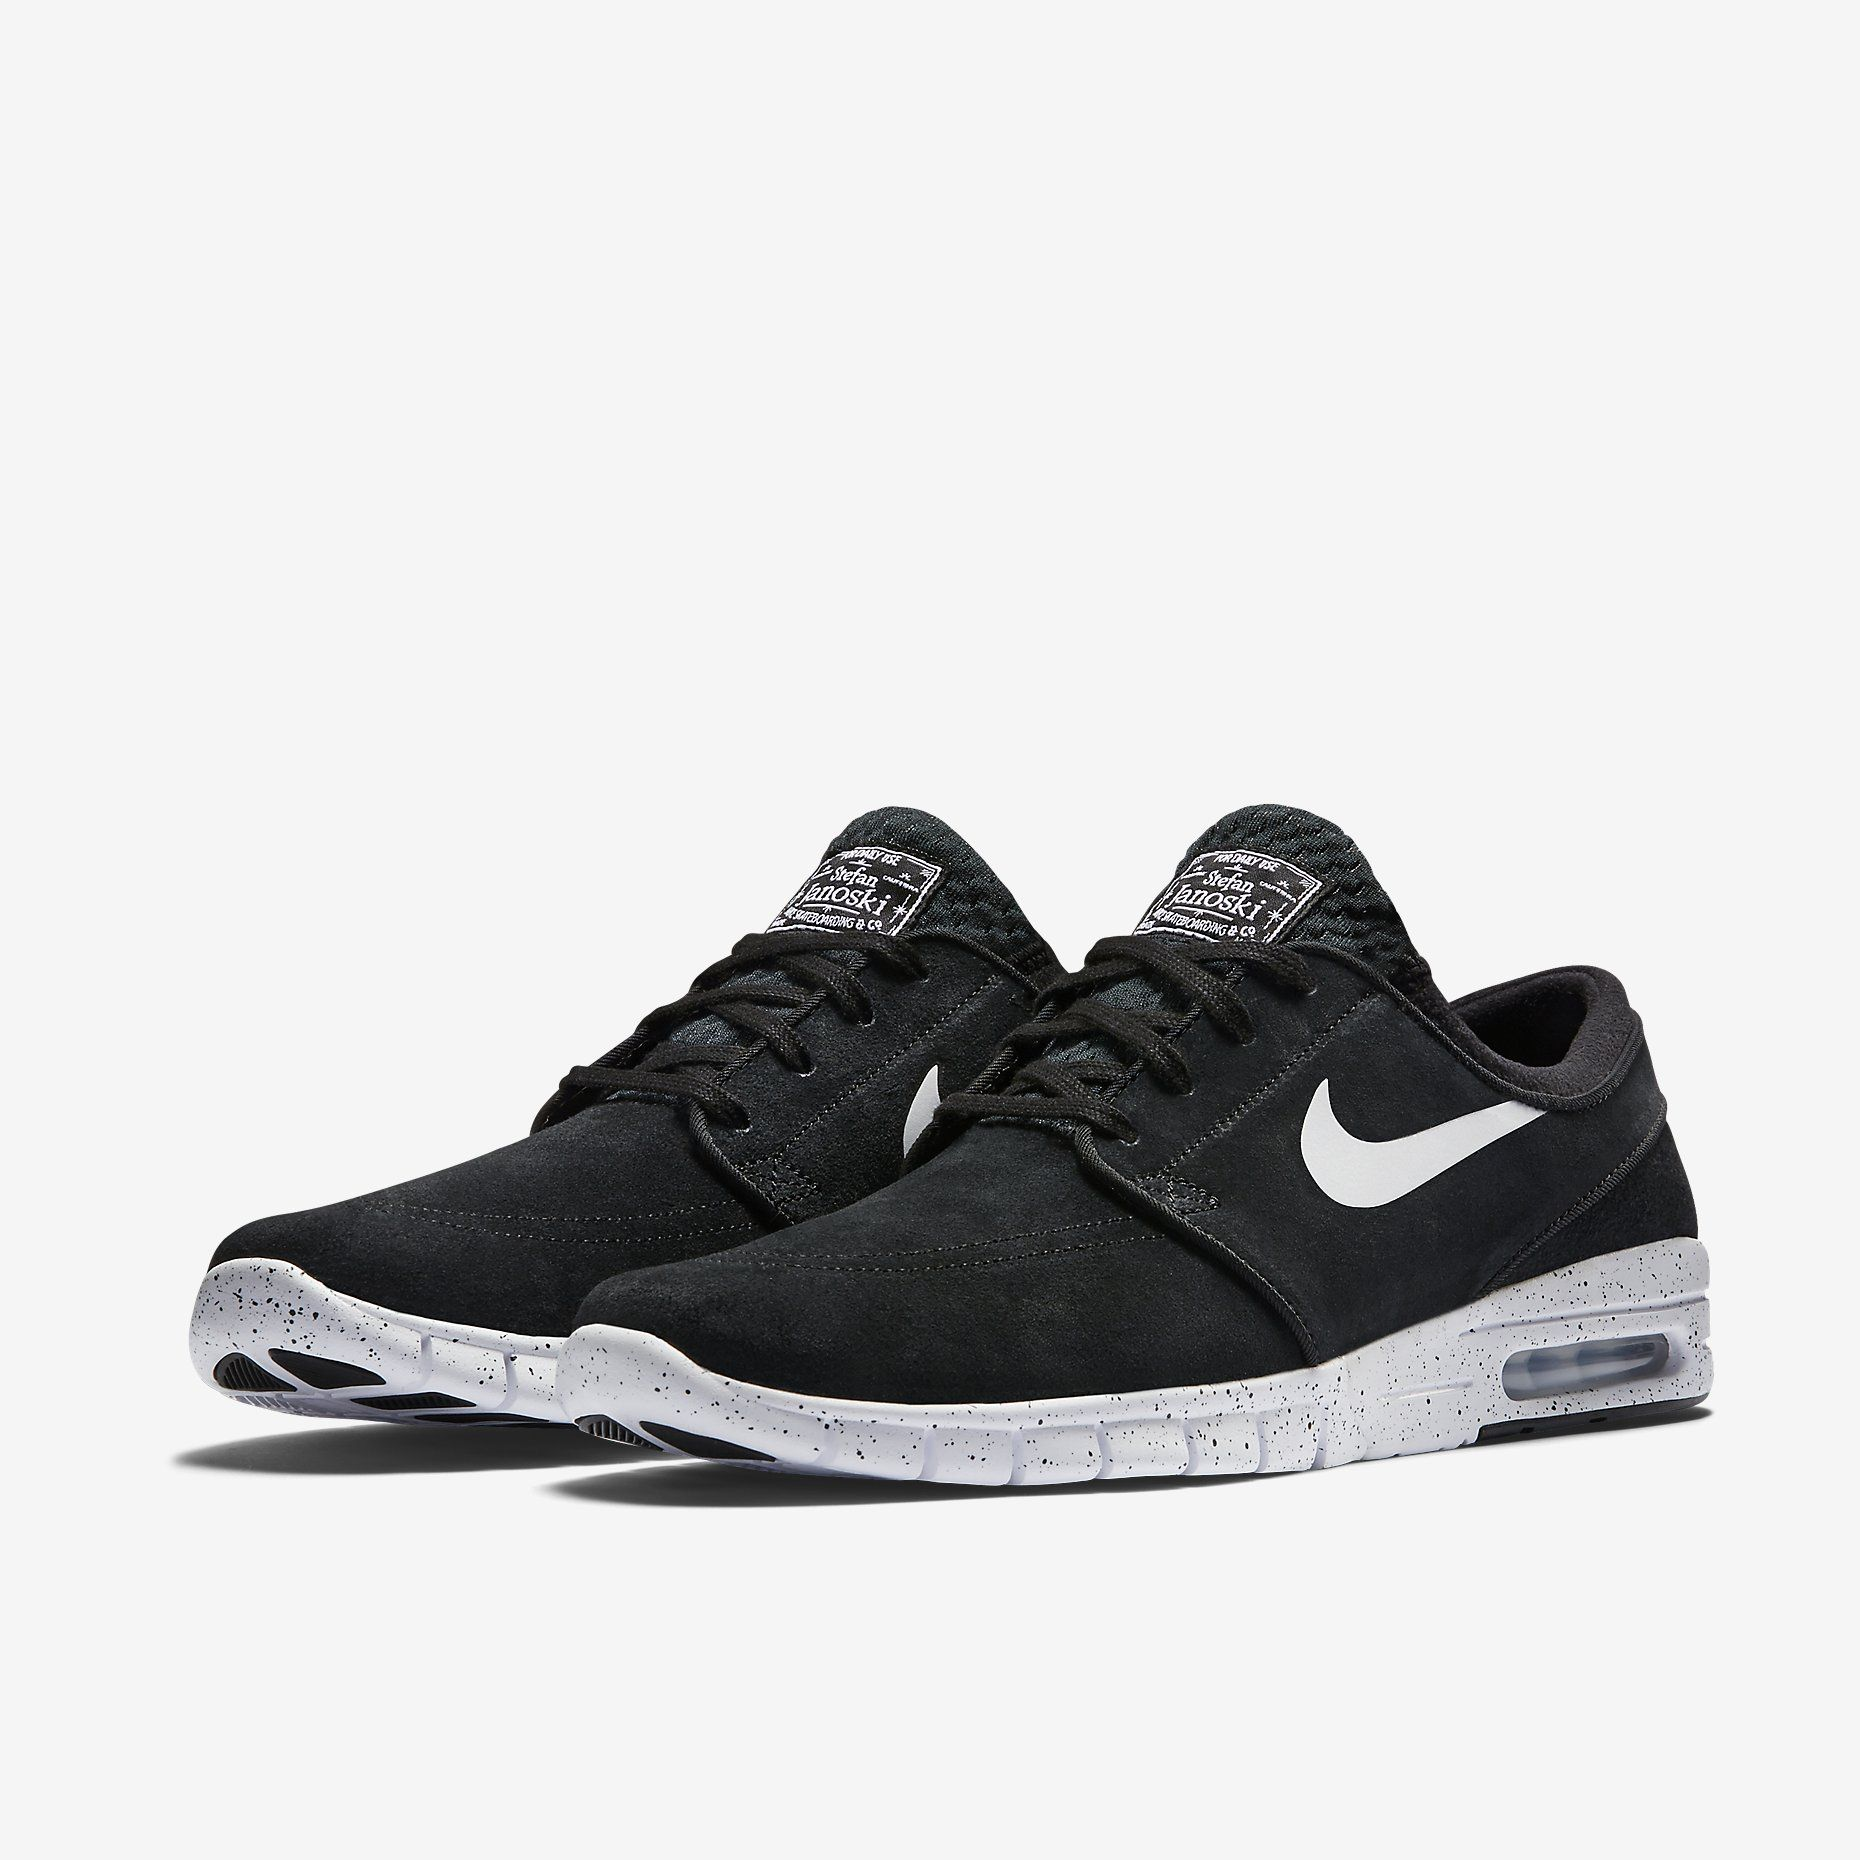 the latest da1e0 13be3 Nike SB Stefan Janoski Max Suede Unisex Skateboarding Shoe (Men s Sizing).  Nike Store